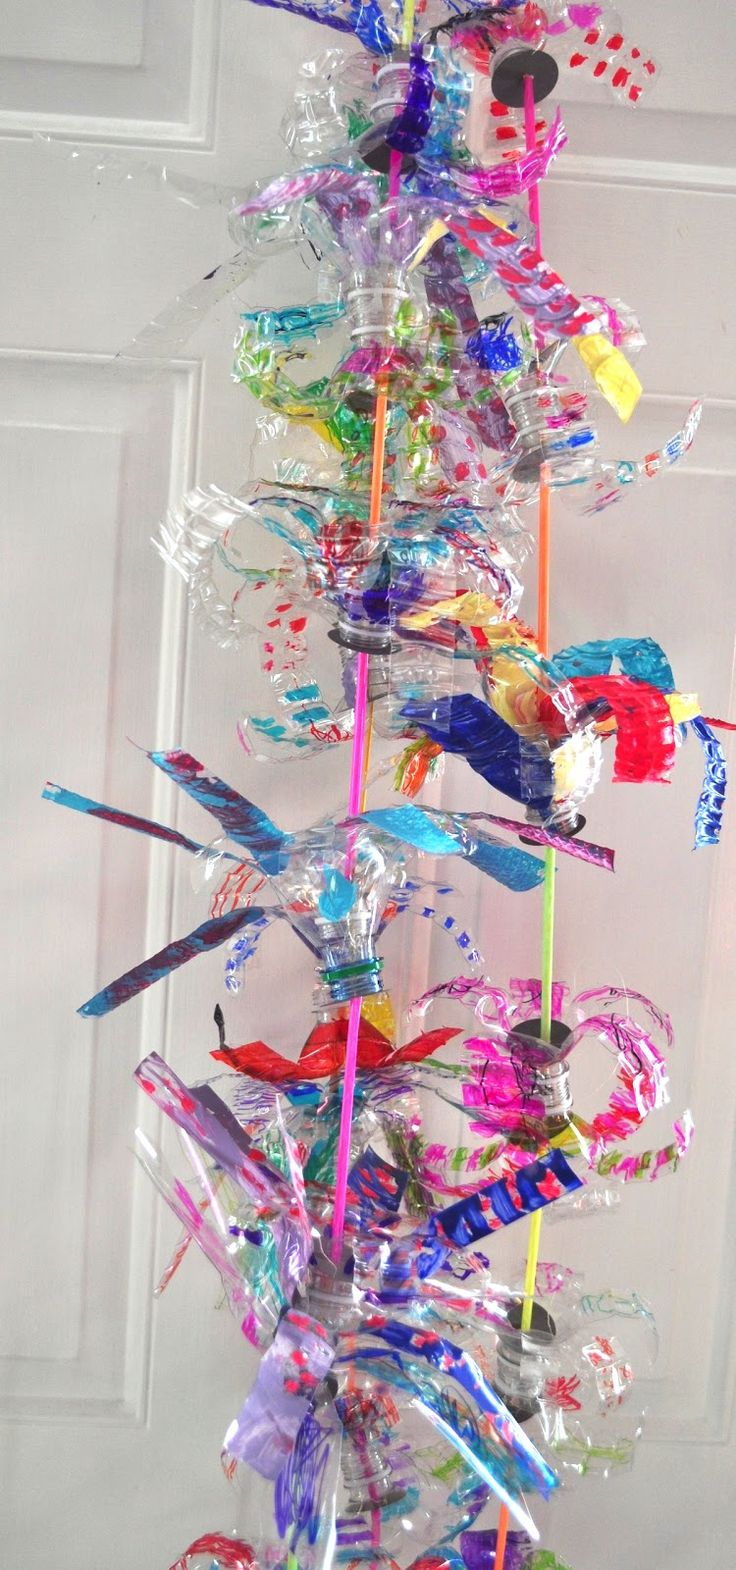 2538 best images about diy crafts and art on pinterest for Recycled flower art